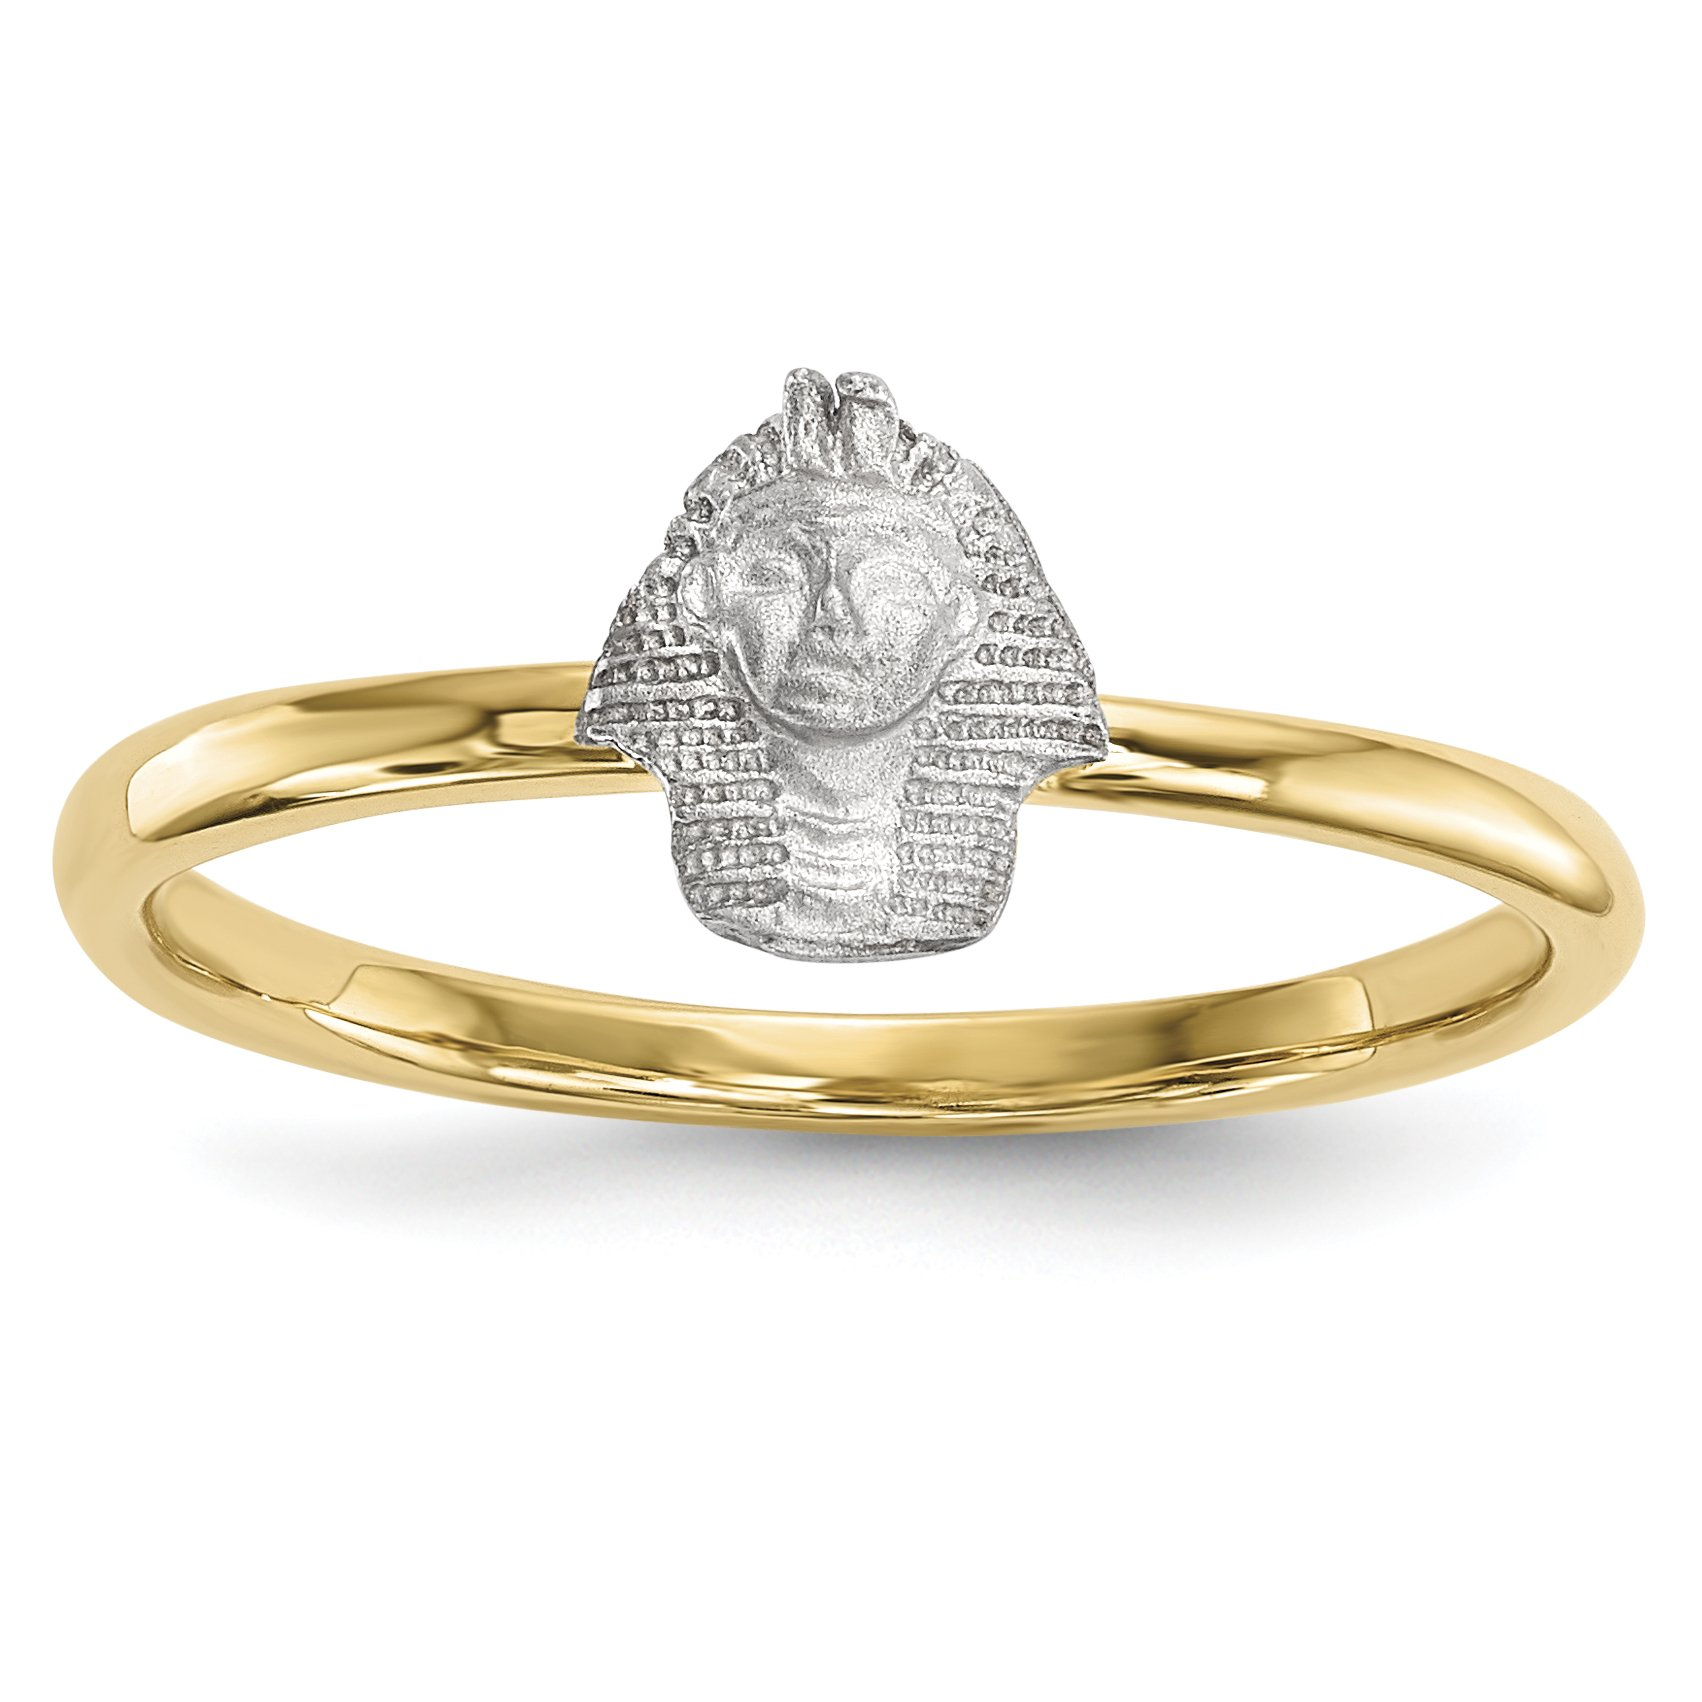 ICE CARATS 14k Two Tone Yellow Gold Pharaoh Band Ring Size 7.00 Fine Jewelry Gift Set For Women Heart